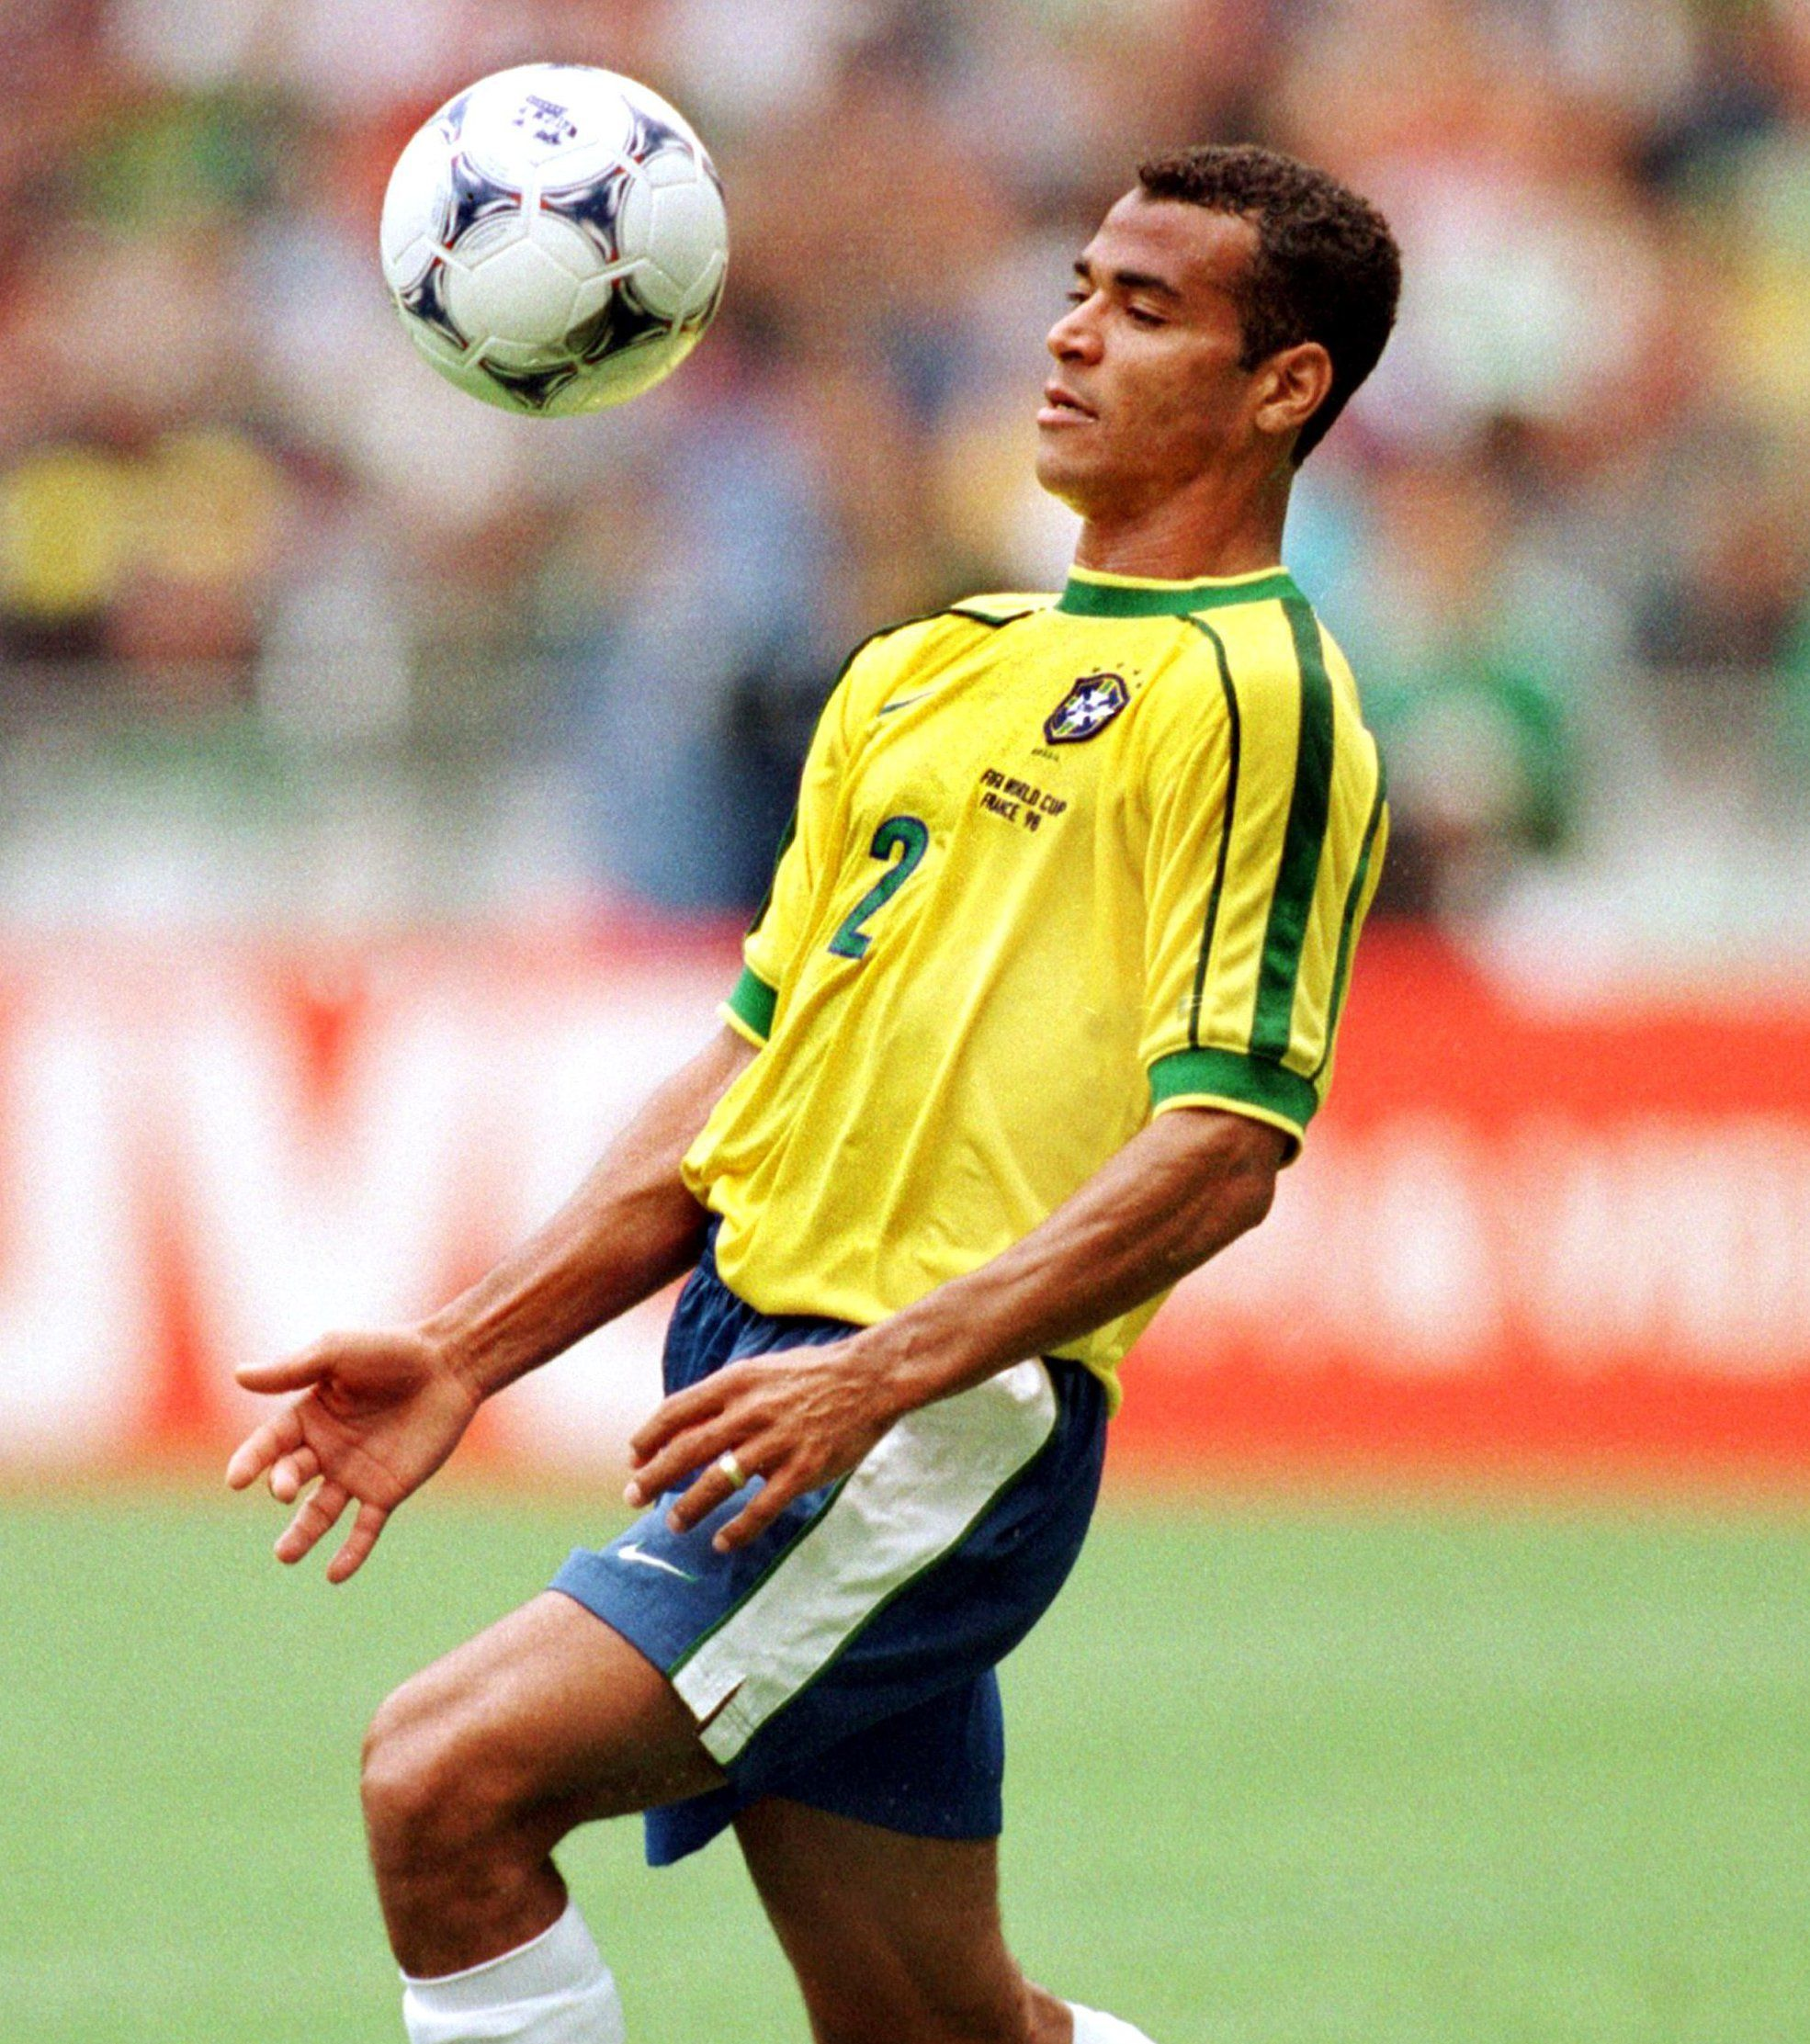 Cafu = the best right-back ever! (just my view)